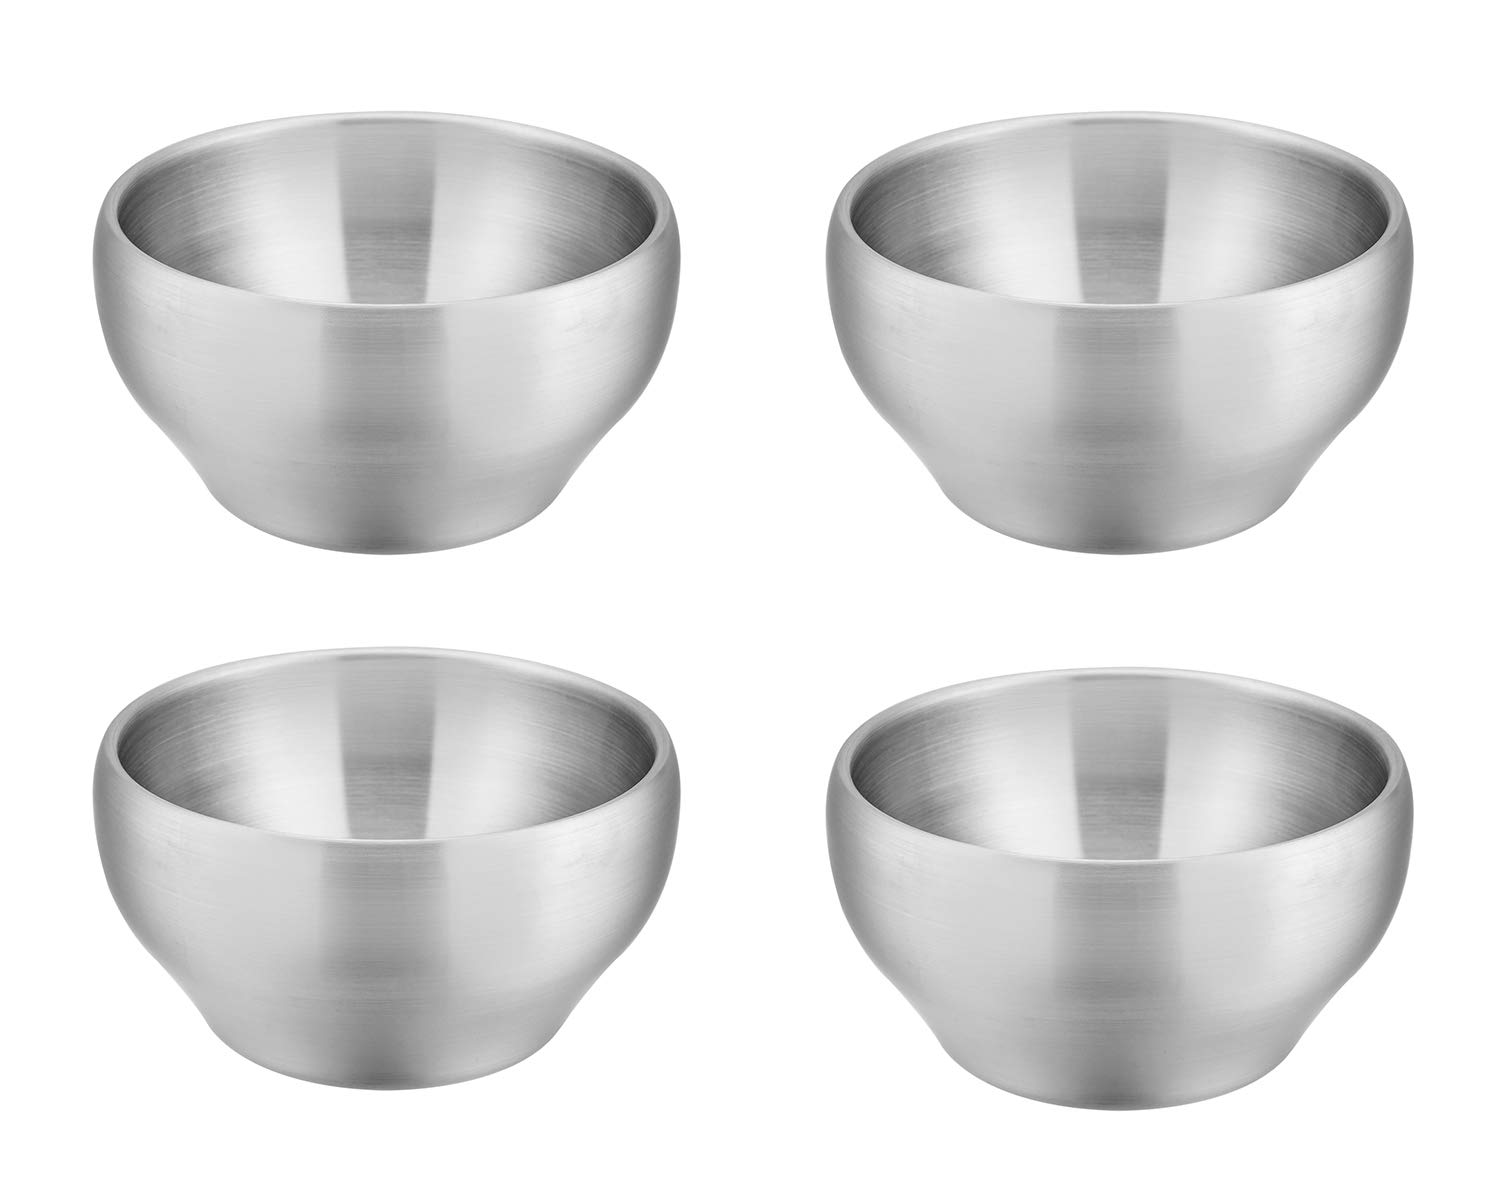 Bowls for Kids Toddlers, E-far 12 Ounce Double-Deck SUS304 Stainless Steel Bowls for Baby Children, Healthy & Matte Finish, Insulated & Shatterproof - Set of 4 by E-far